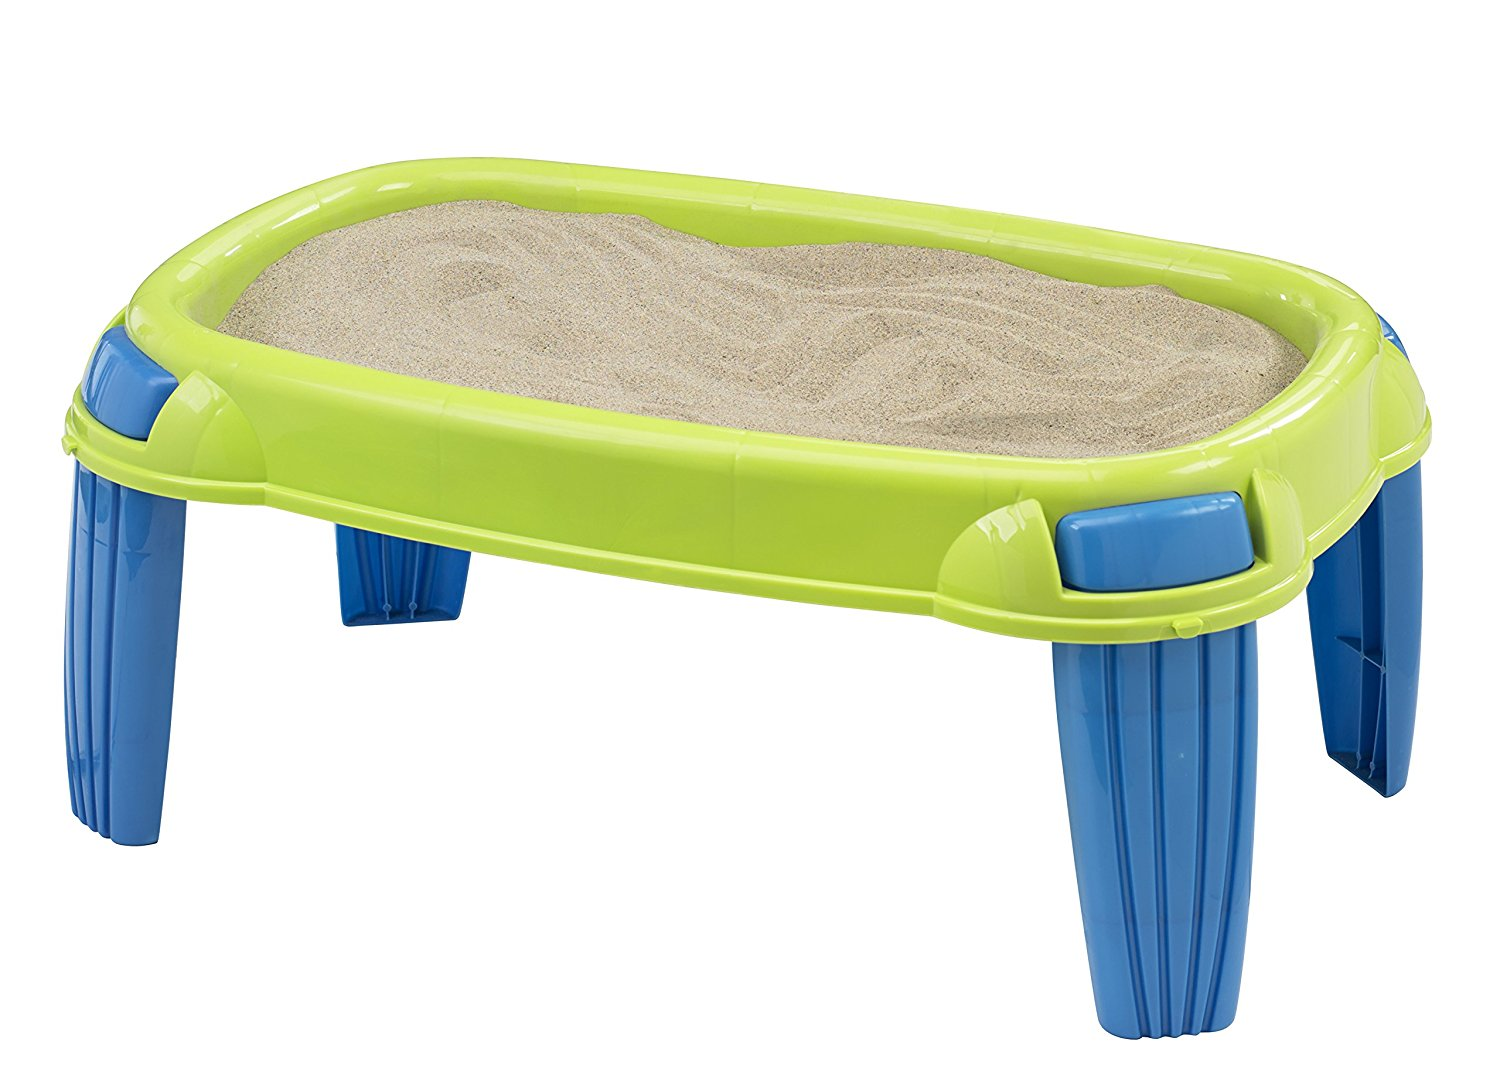 Sand Table, Every American Plastic Toys product is tested by at ...